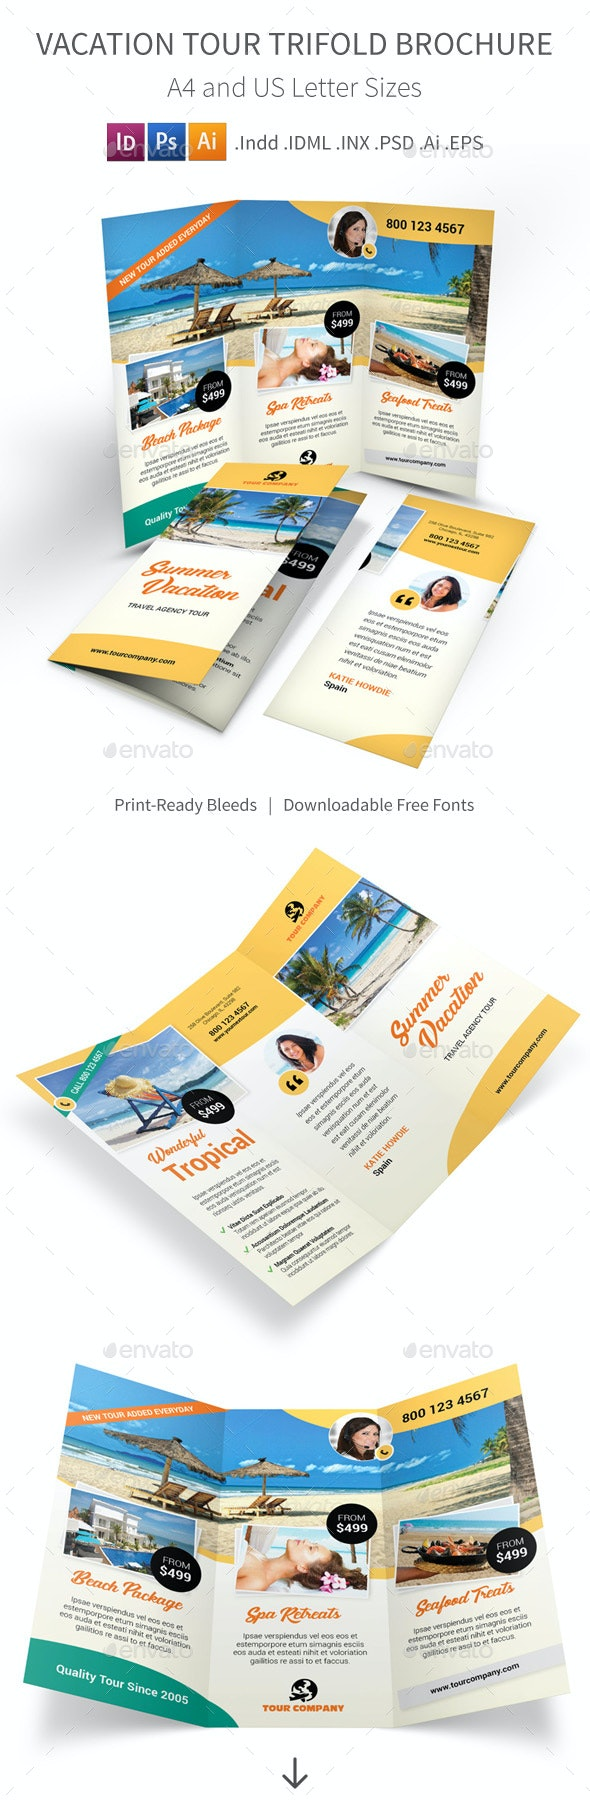 Vacation Tour Trifold Brochure - Informational Brochures